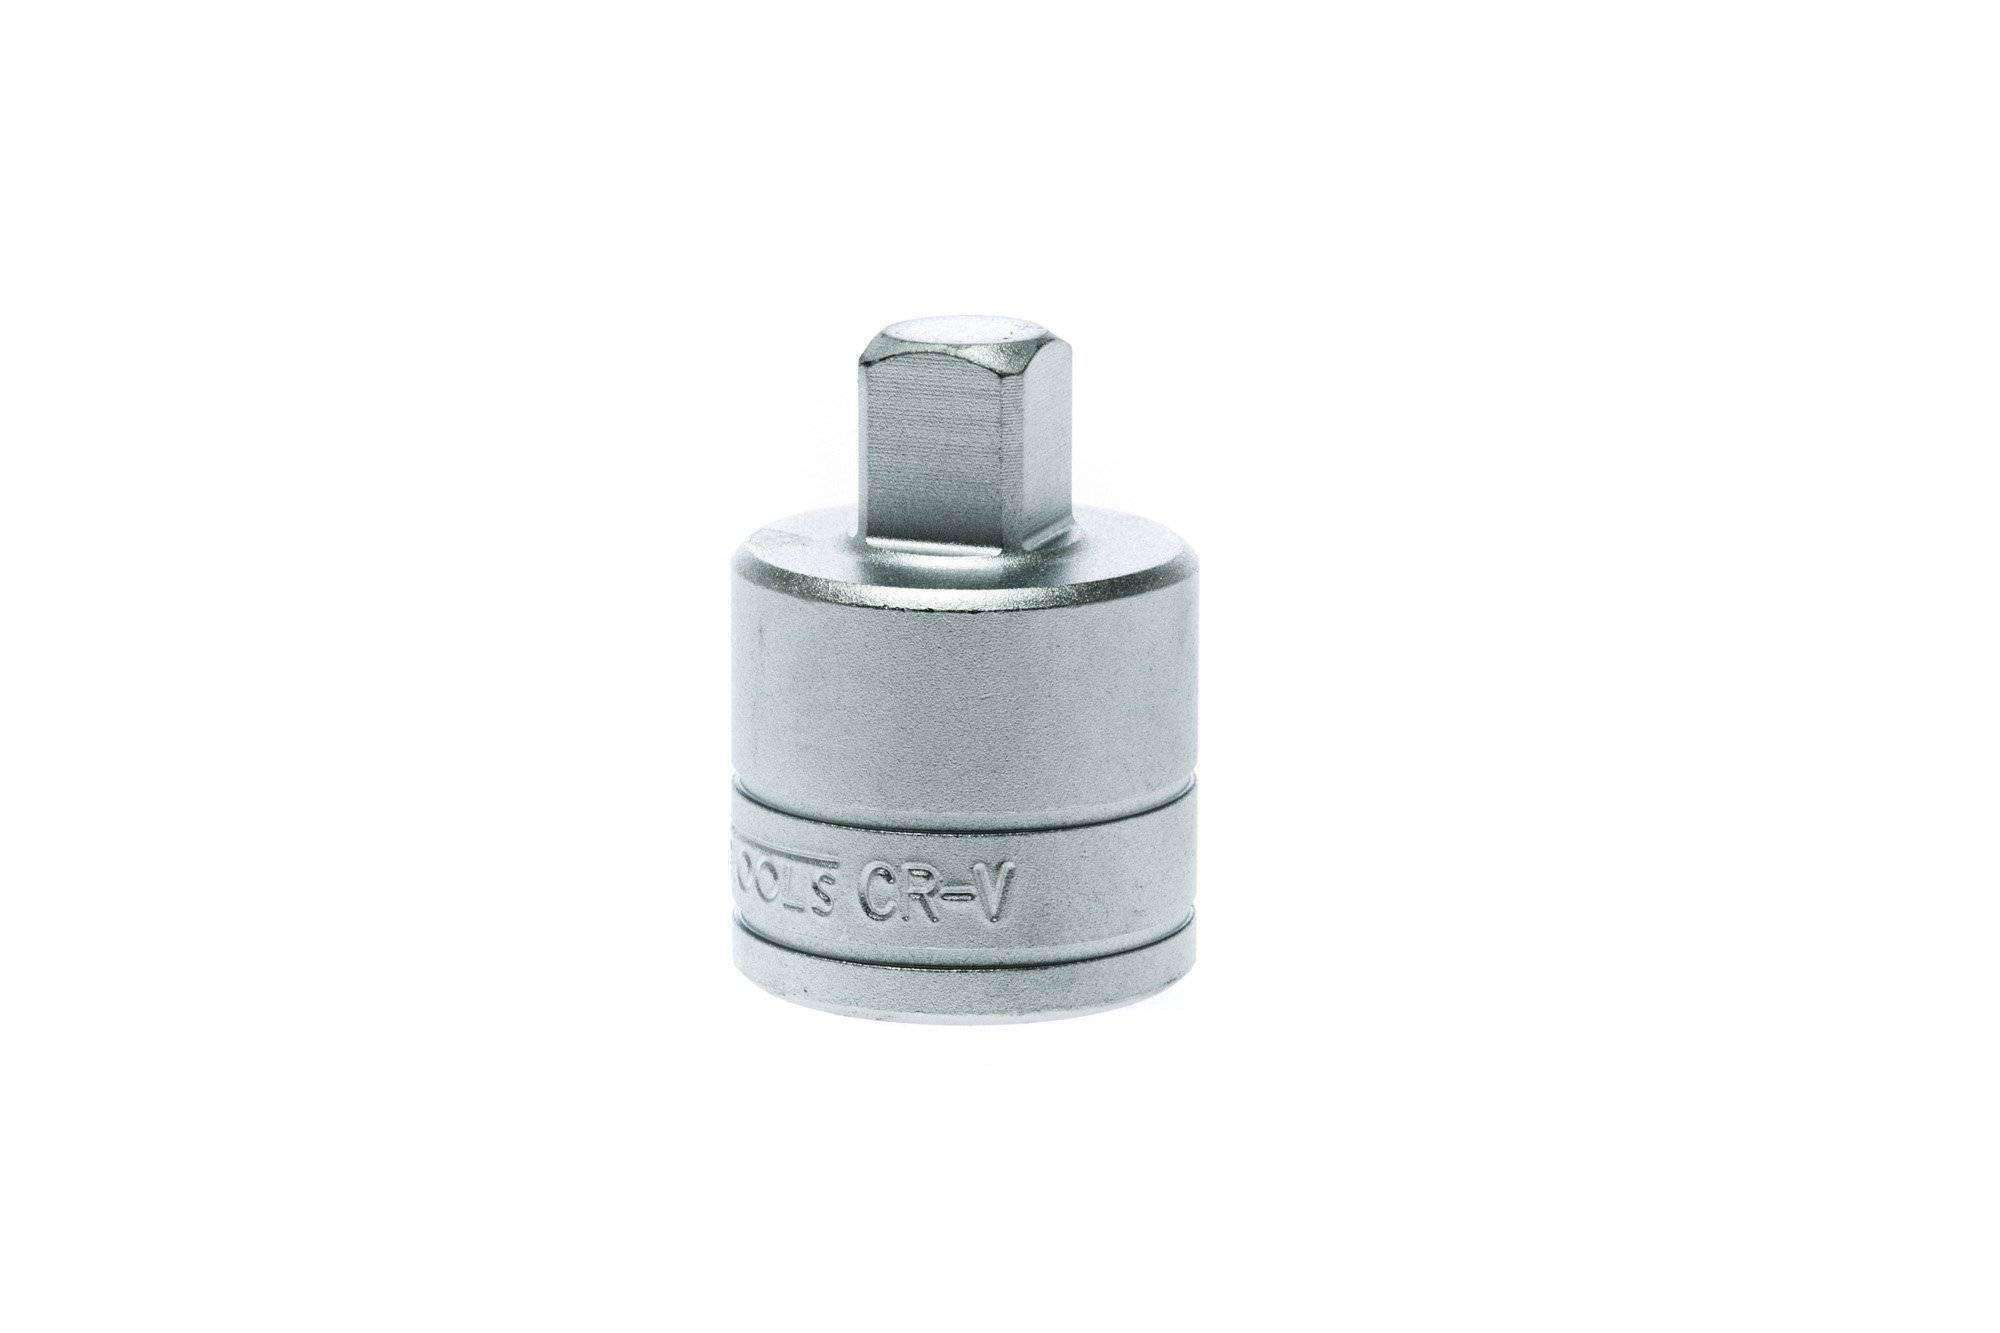 Teng Tools - 3/4 Inch Drive 3/4 Inch Drive Female: 1/2 Inch Drive Male Adaptor - M340086-C - Teng Tools USA